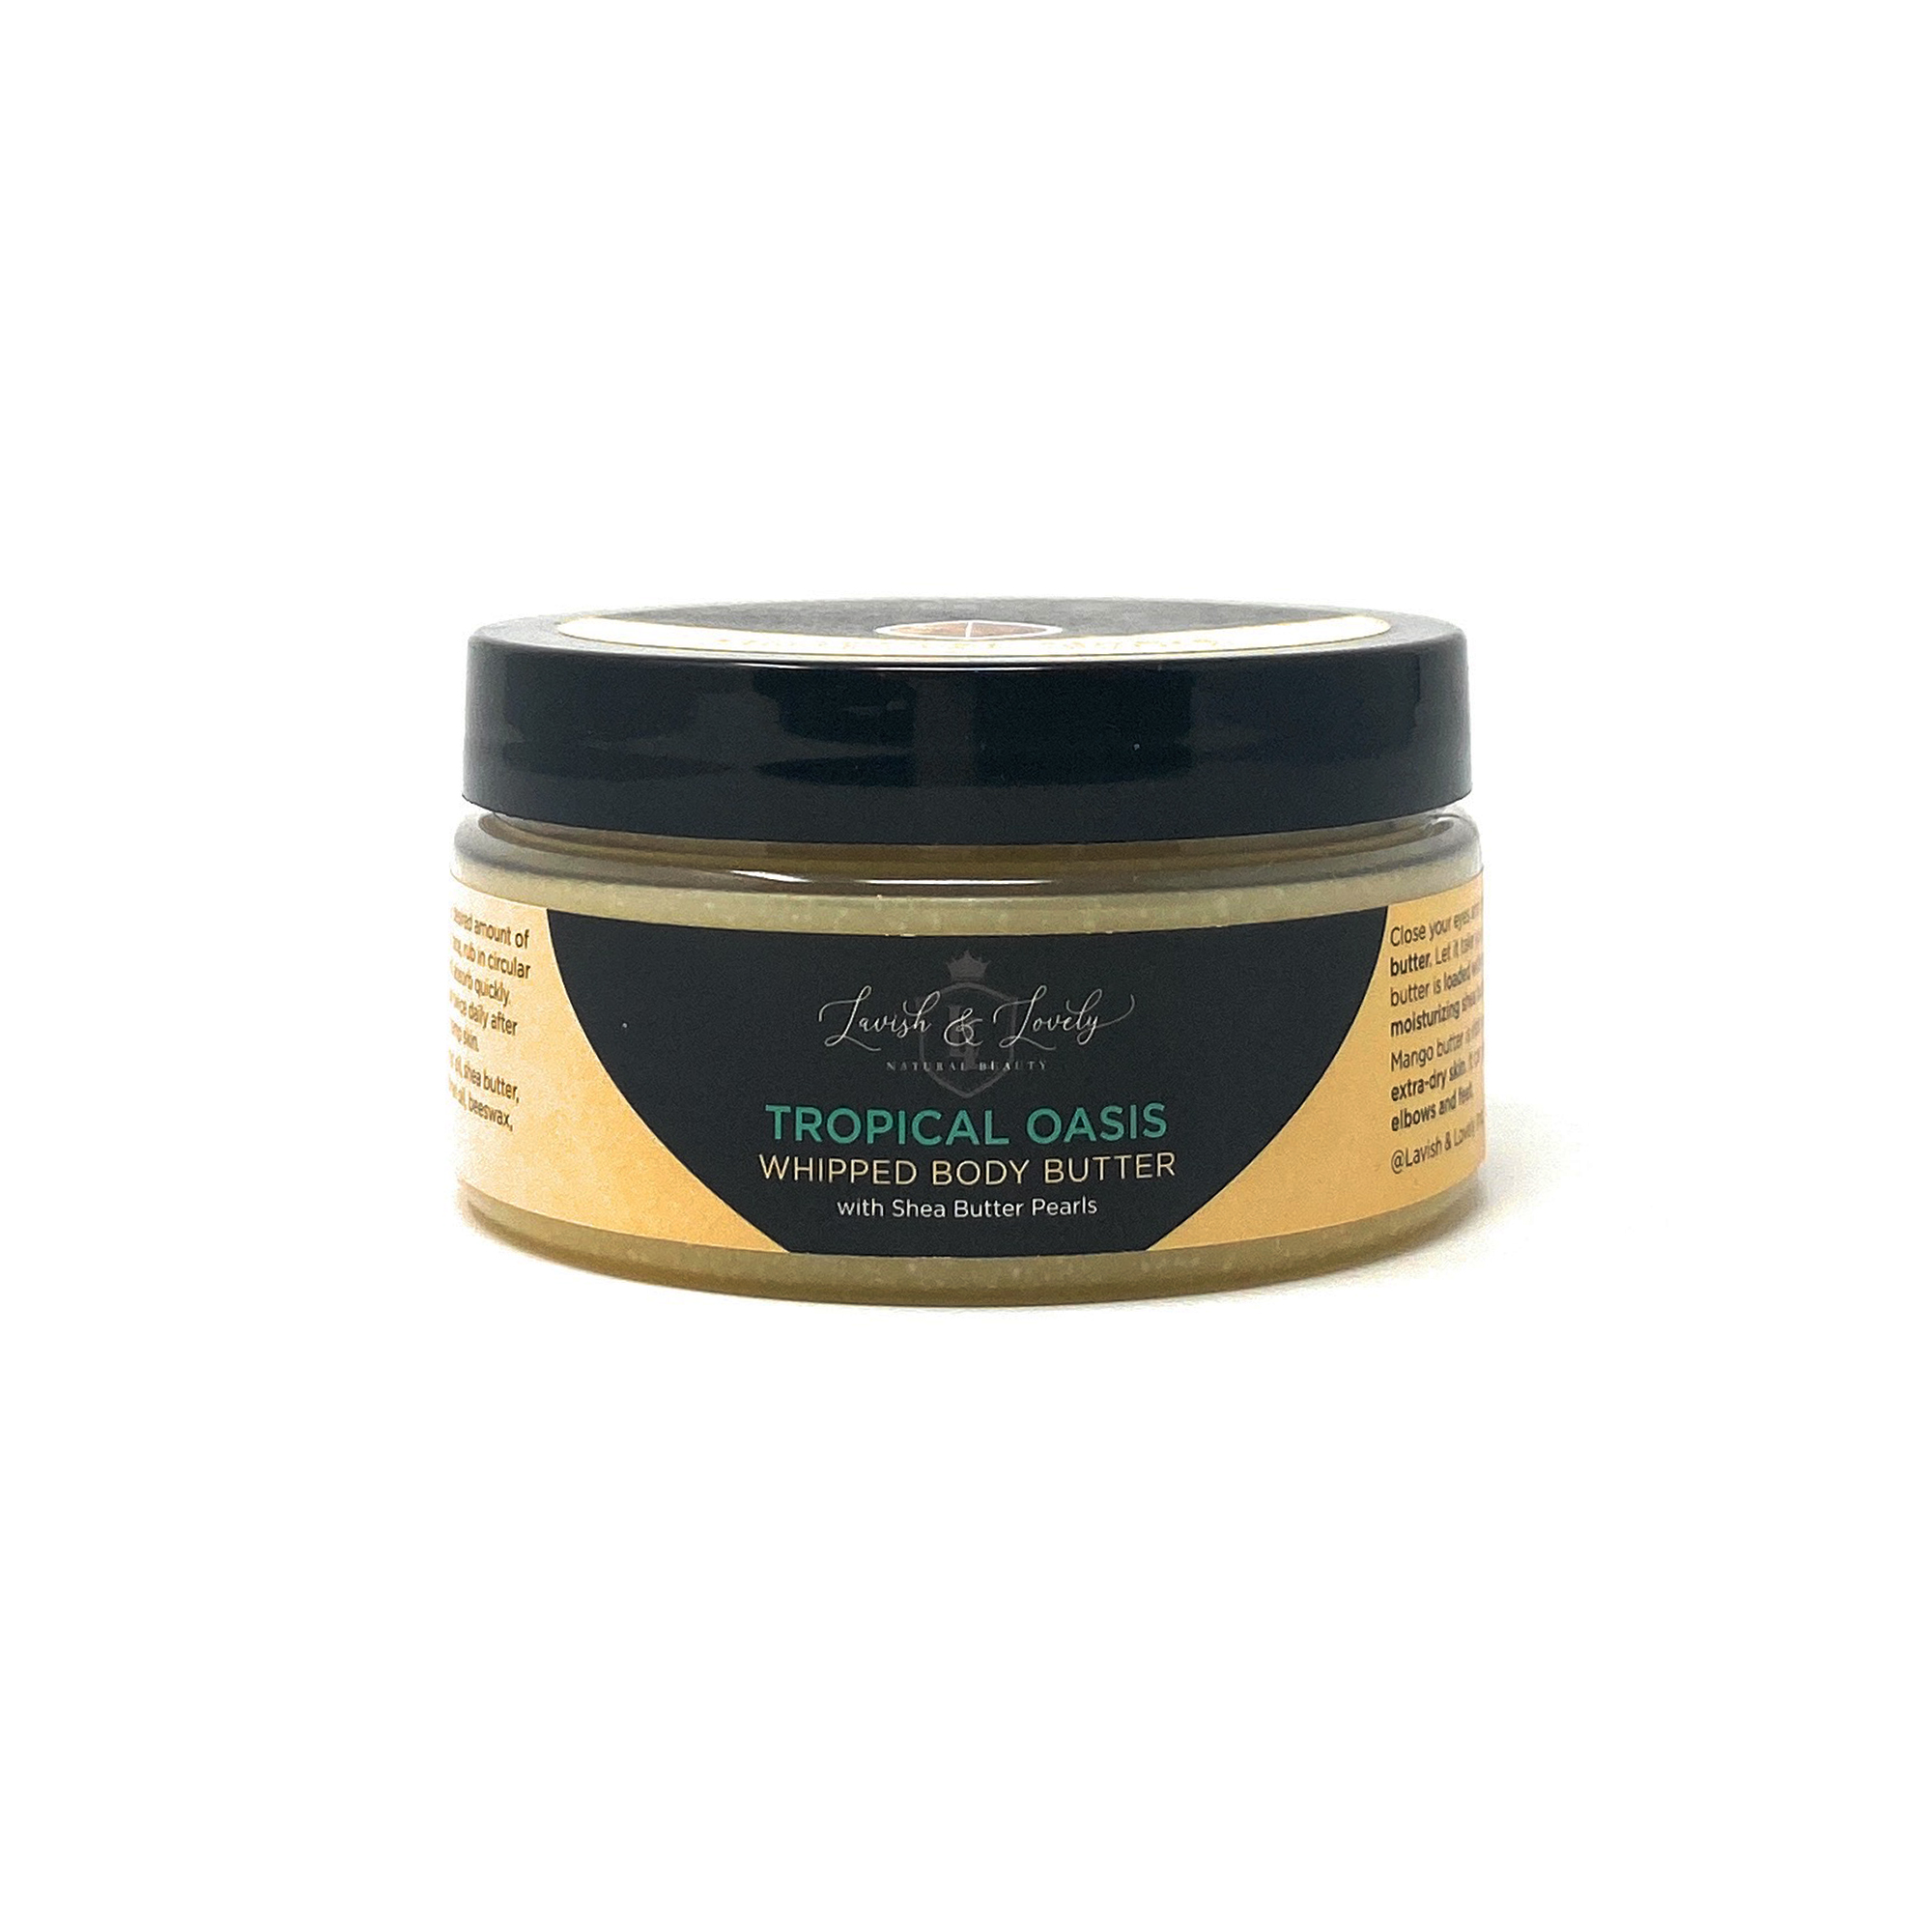 Lavish & Lovely - Tropical Oasis Scented Whipped Body Butter with Shea Pearls (8oz)